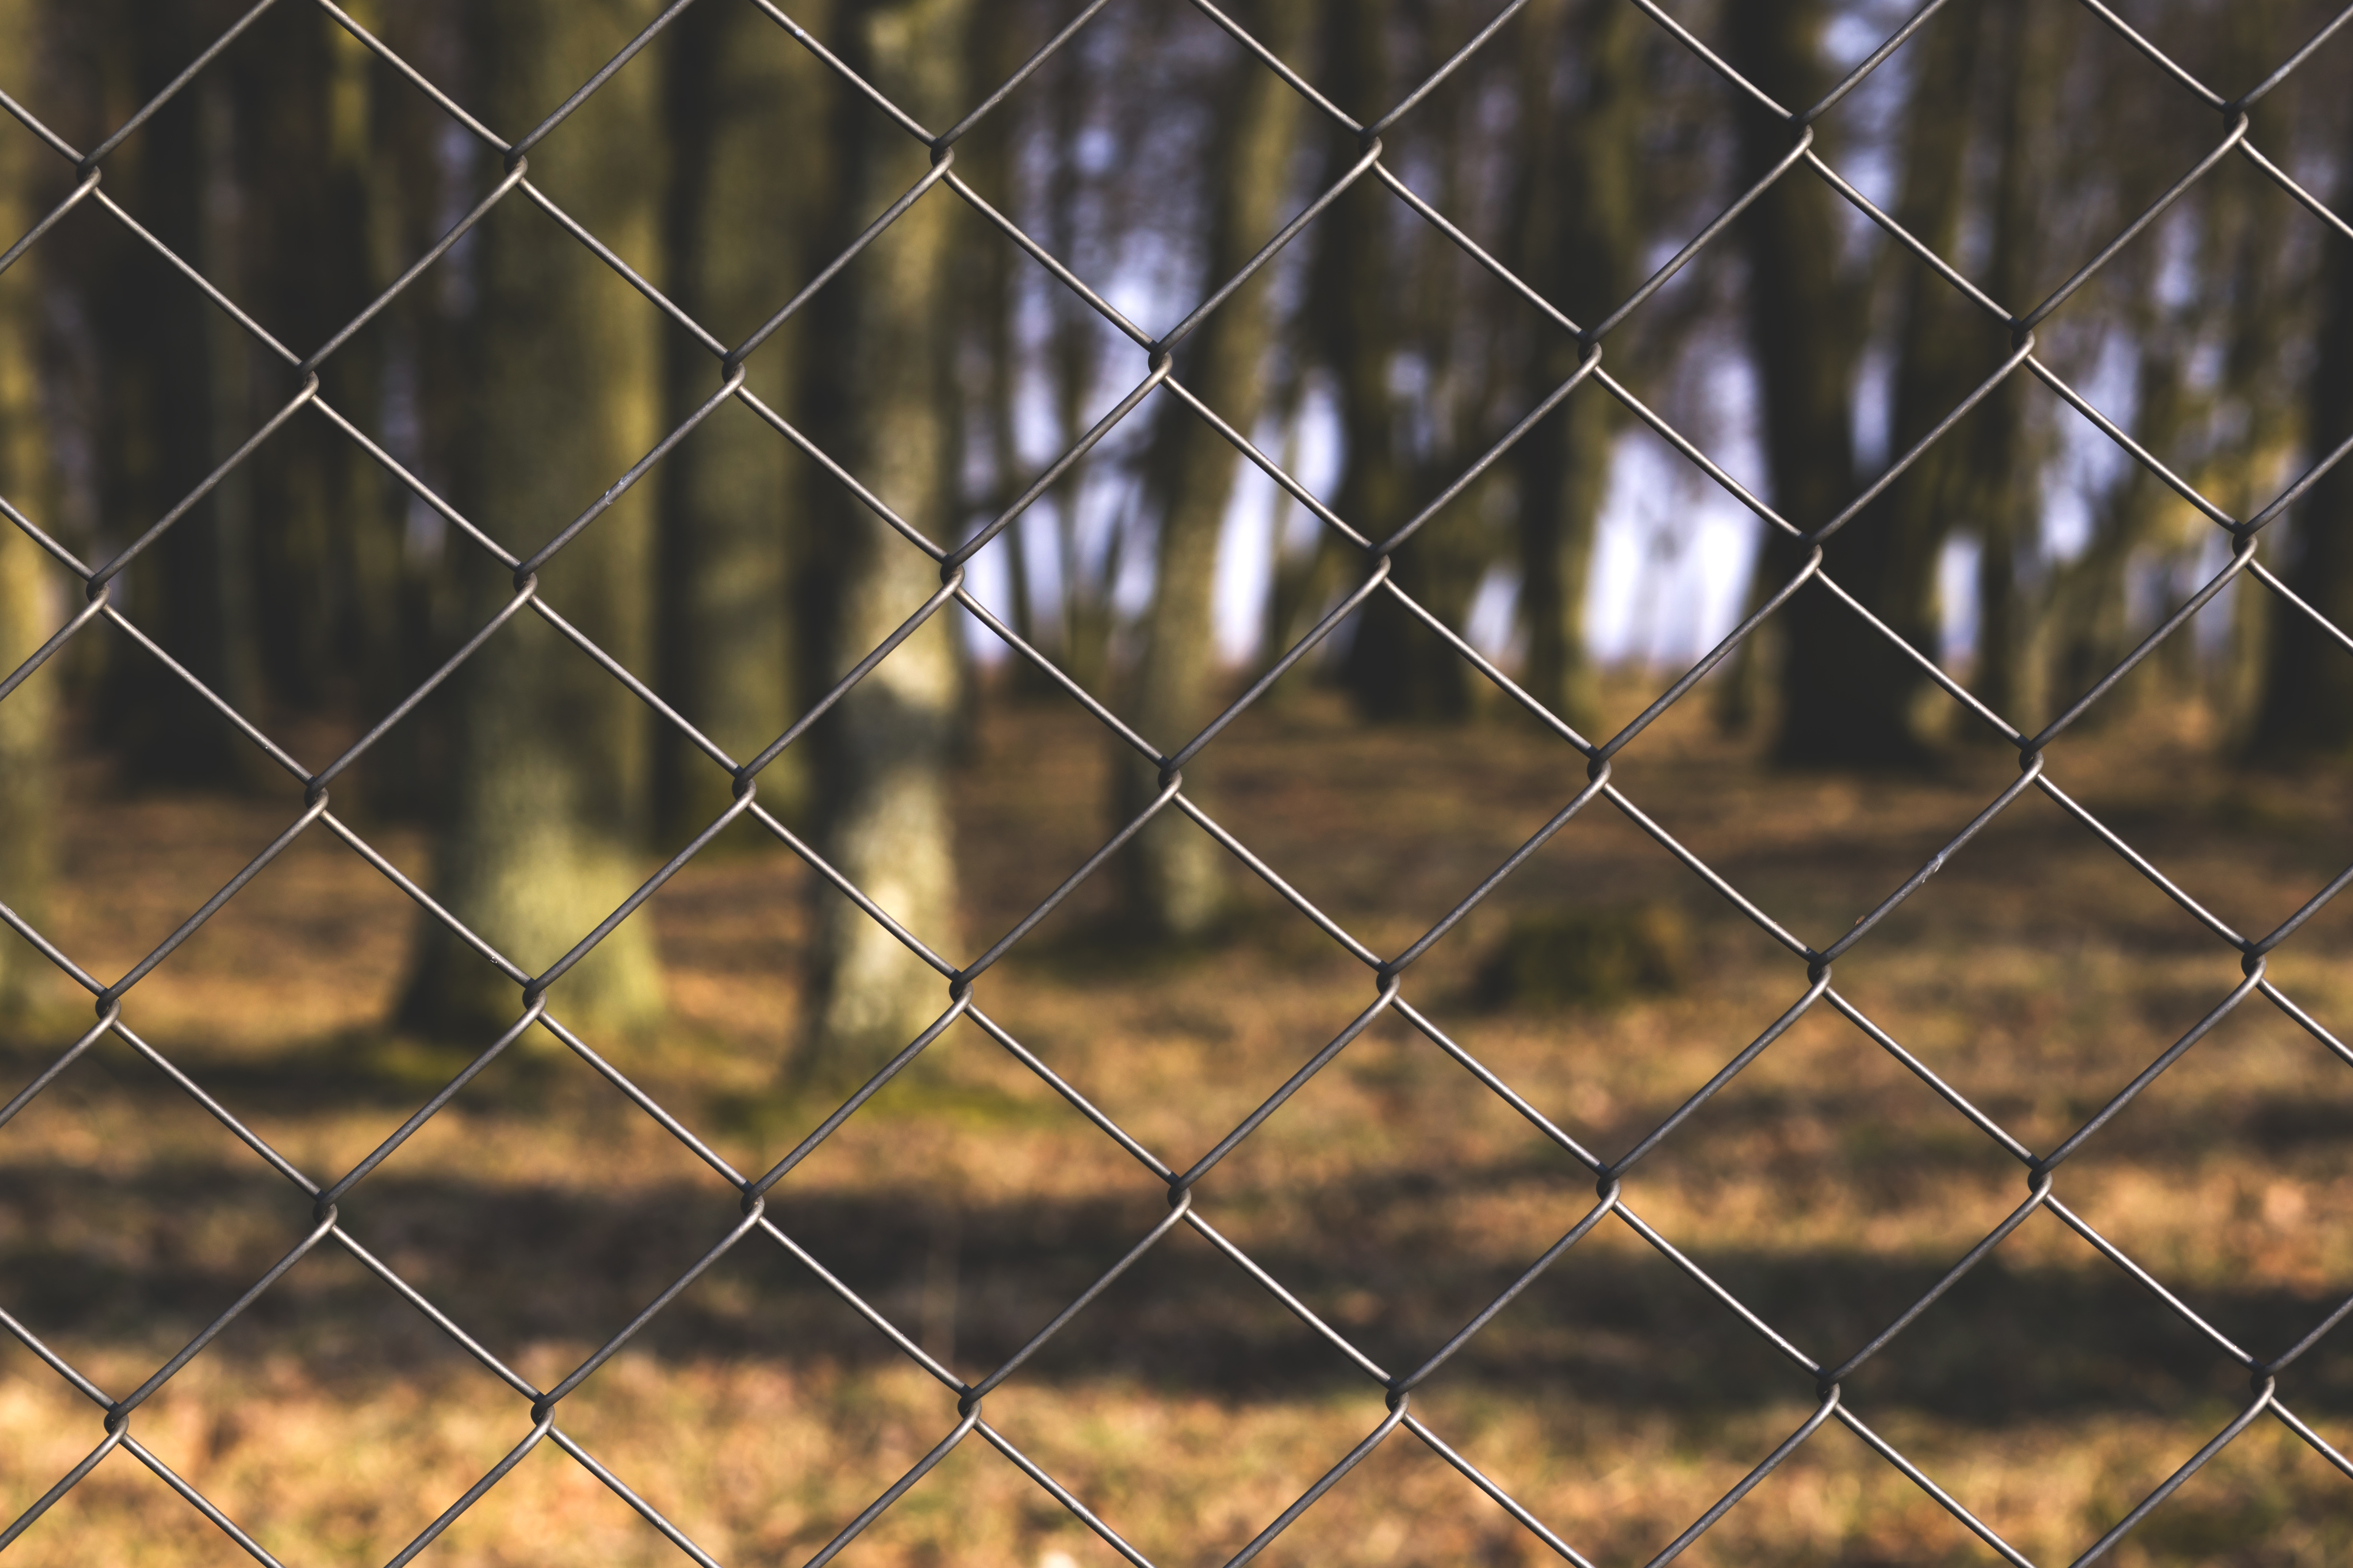 free stock photos of chain link fence pexels